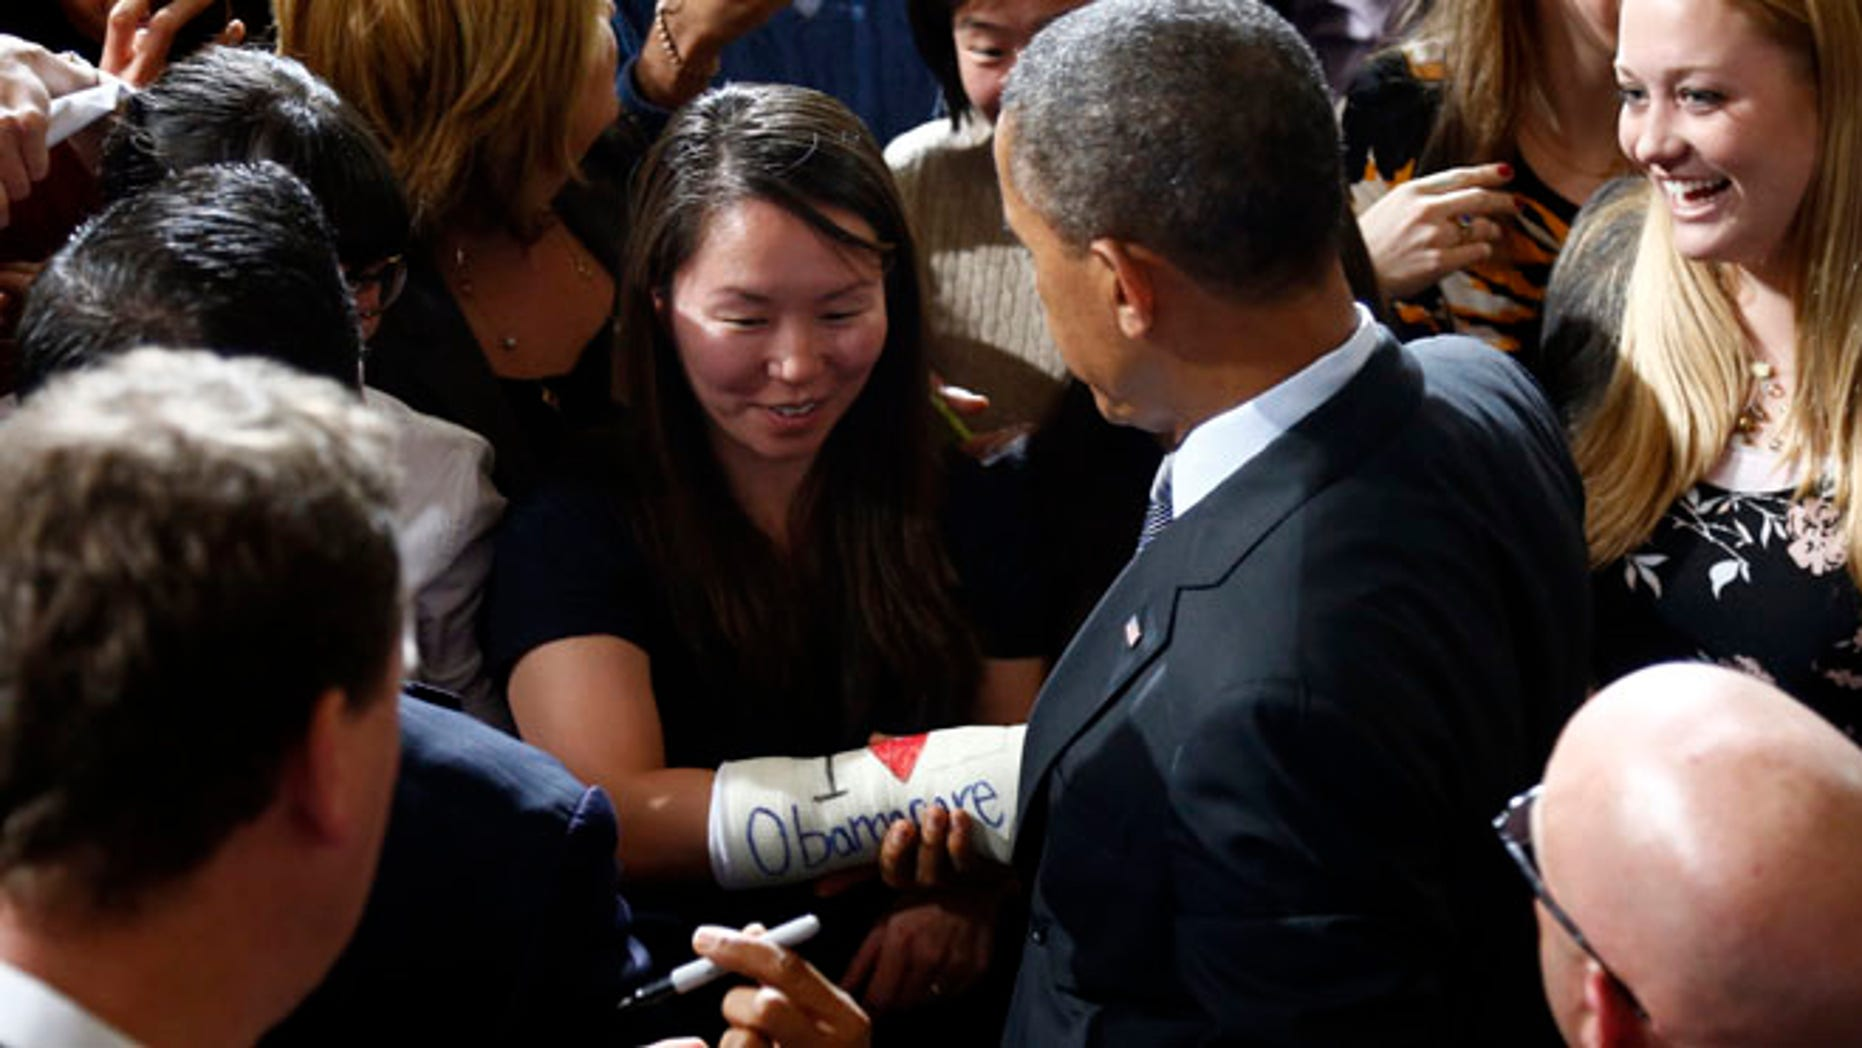 President Barack Obama at Boston's historic Faneuil Hall, Wednesday, Oct. 30, 2013.